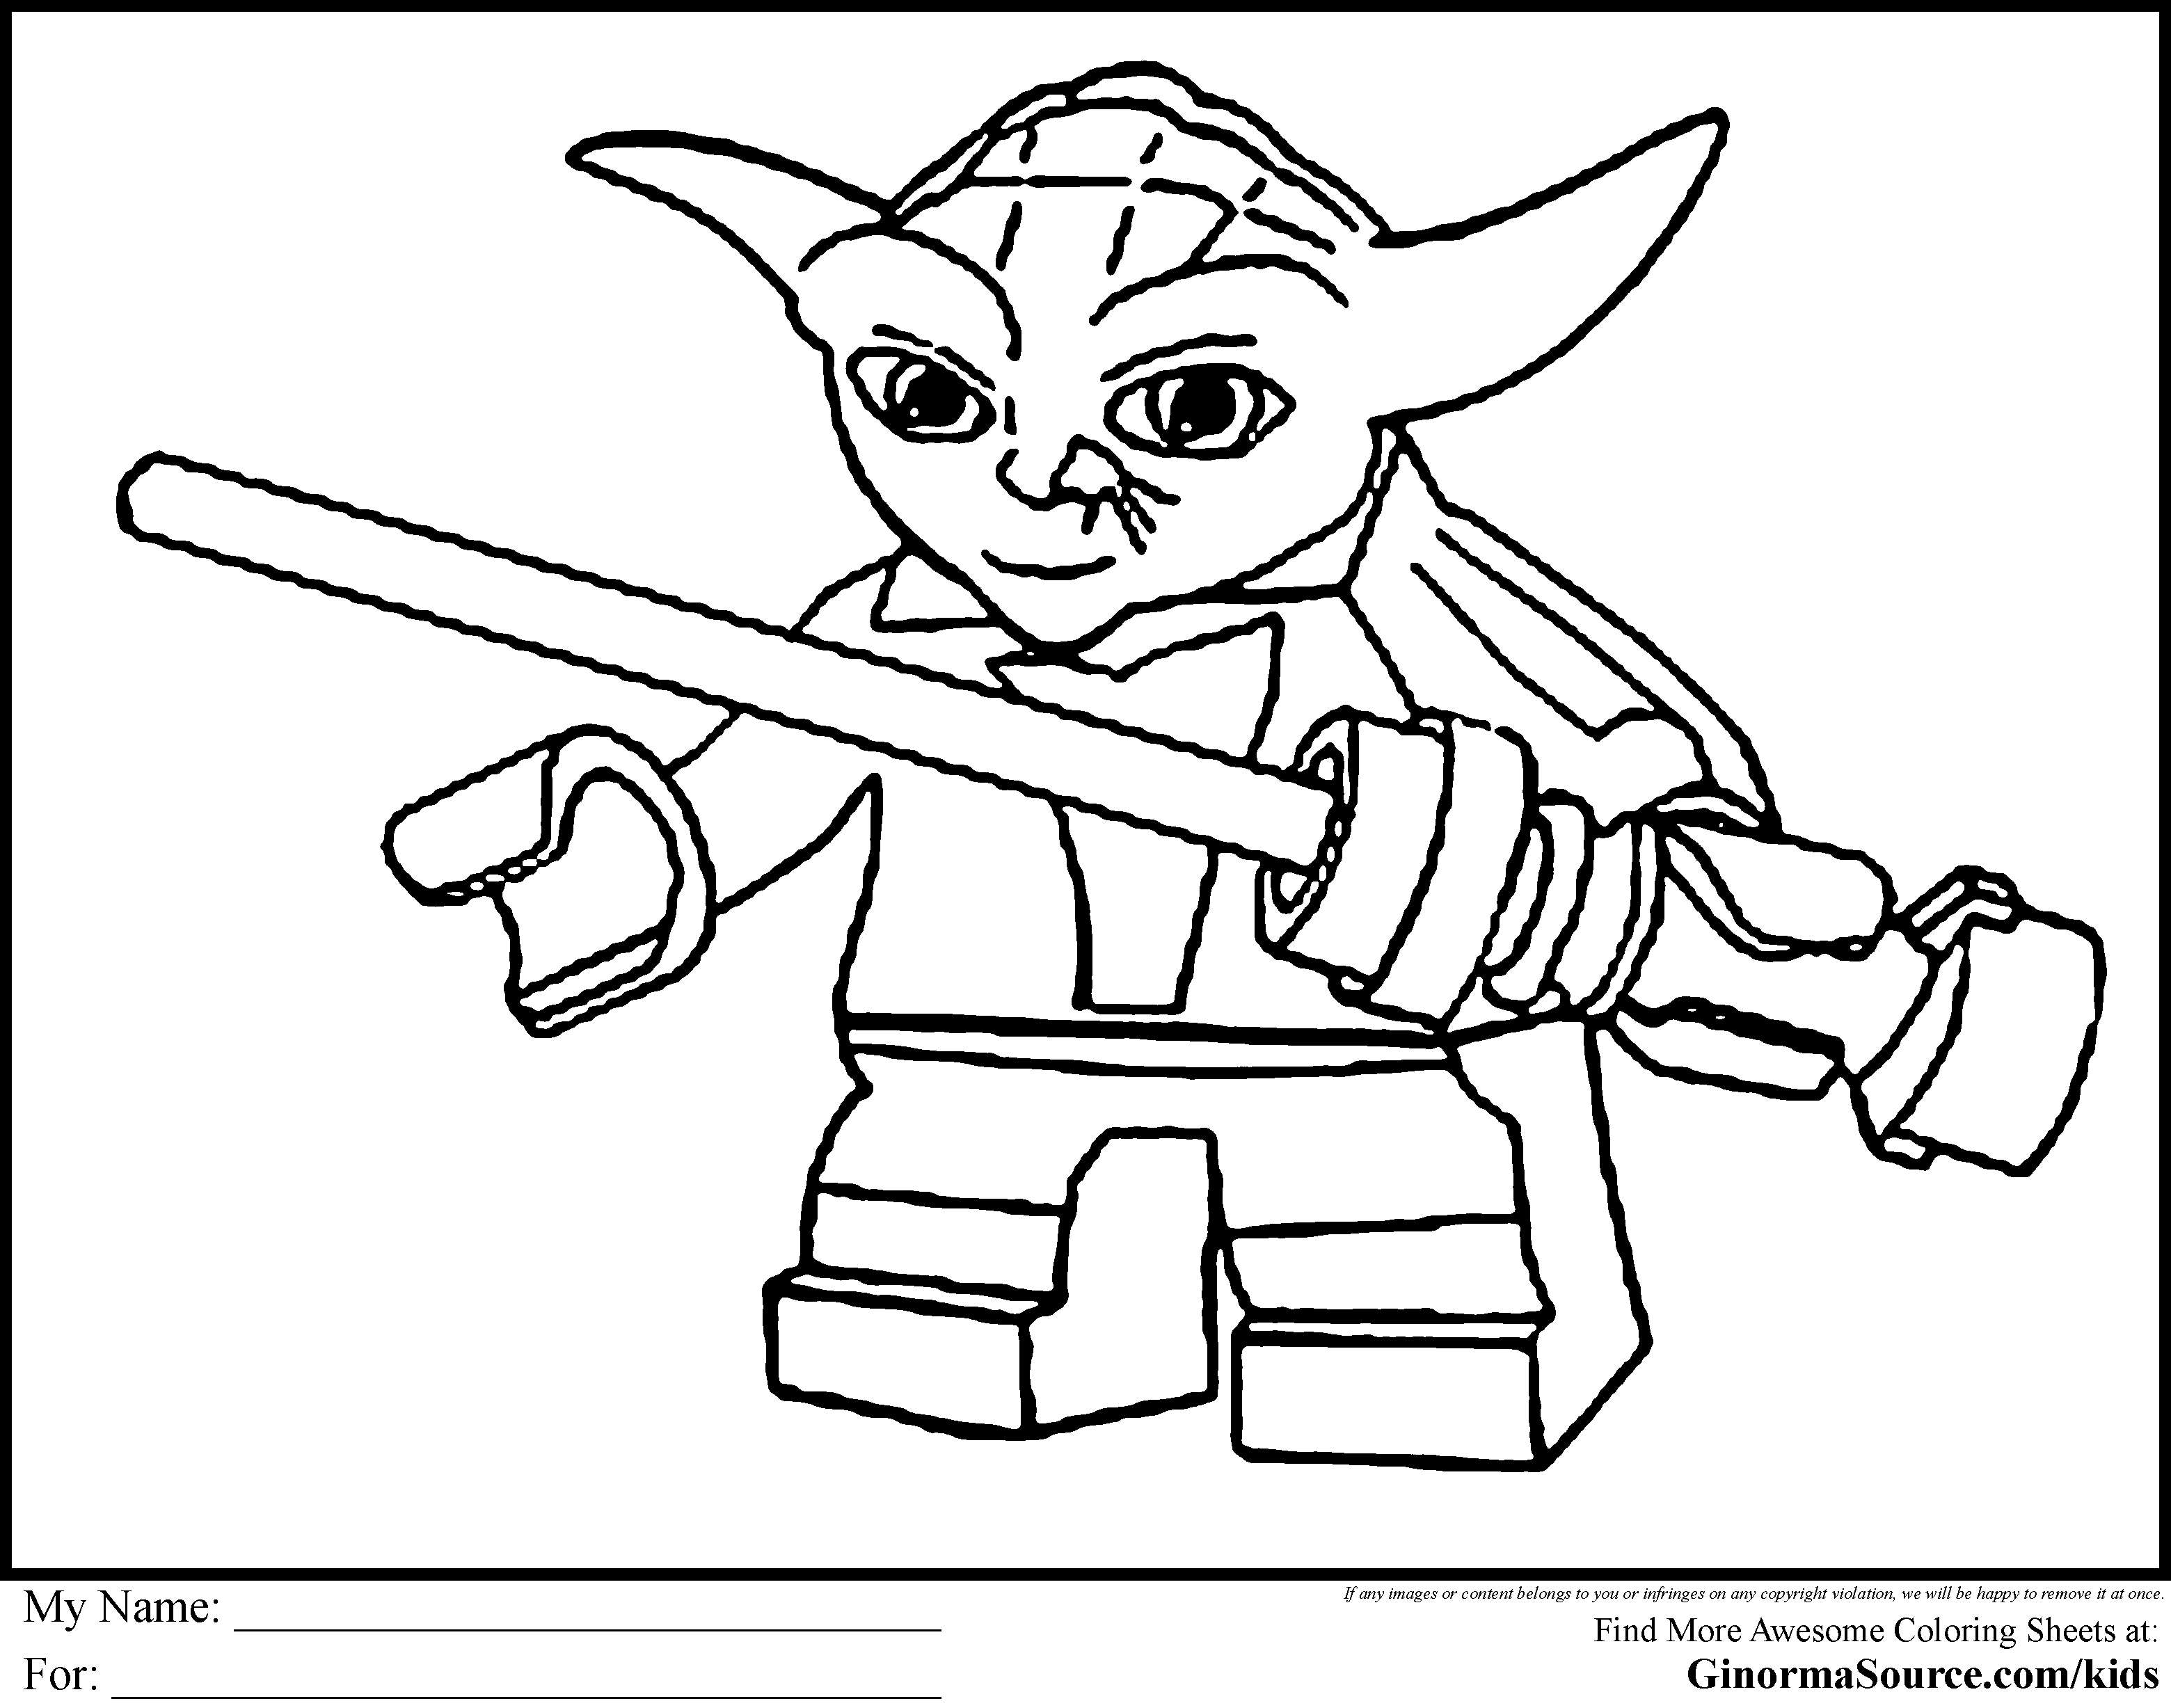 star wars coloring lego lego star wars coloring pages best coloring pages for kids coloring lego wars star